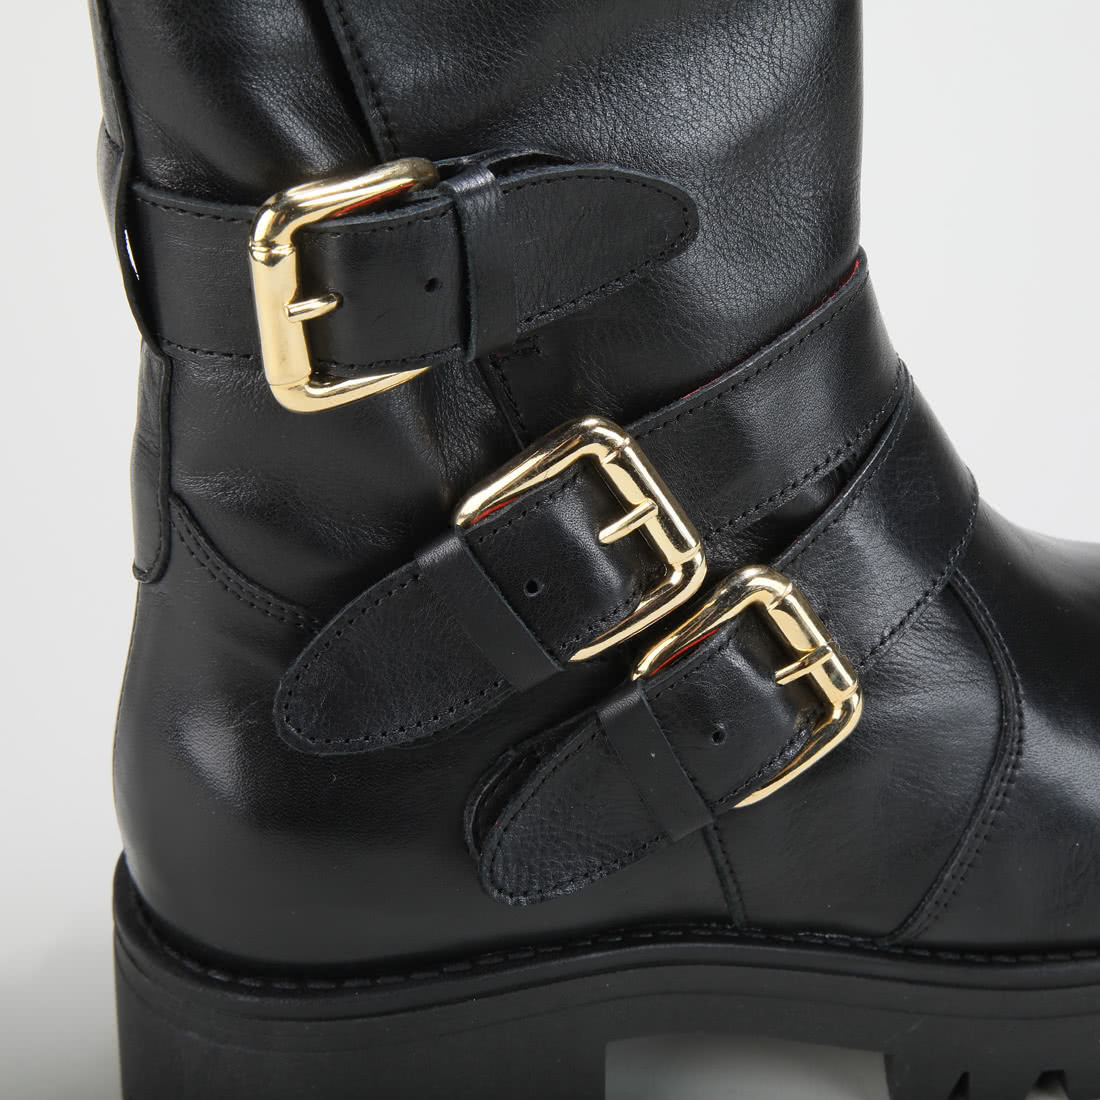 new style bfdb0 57d88 Mauve Morn Boot leather black/gold buy online in BUFFALO ...